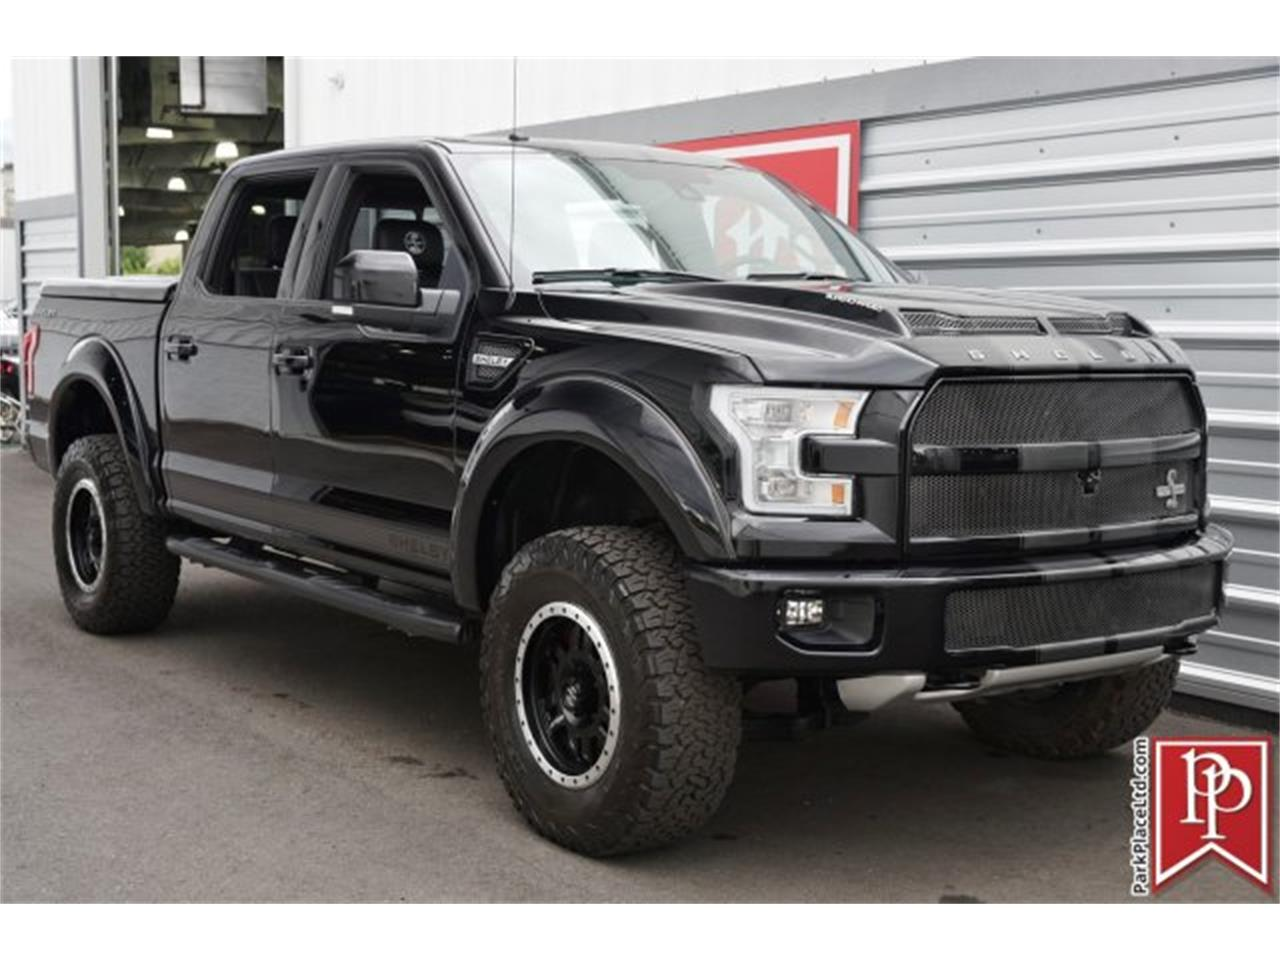 Shelby F150 For Sale >> 2017 Ford Shelby F 150 For Sale Classiccars Com Cc 993490